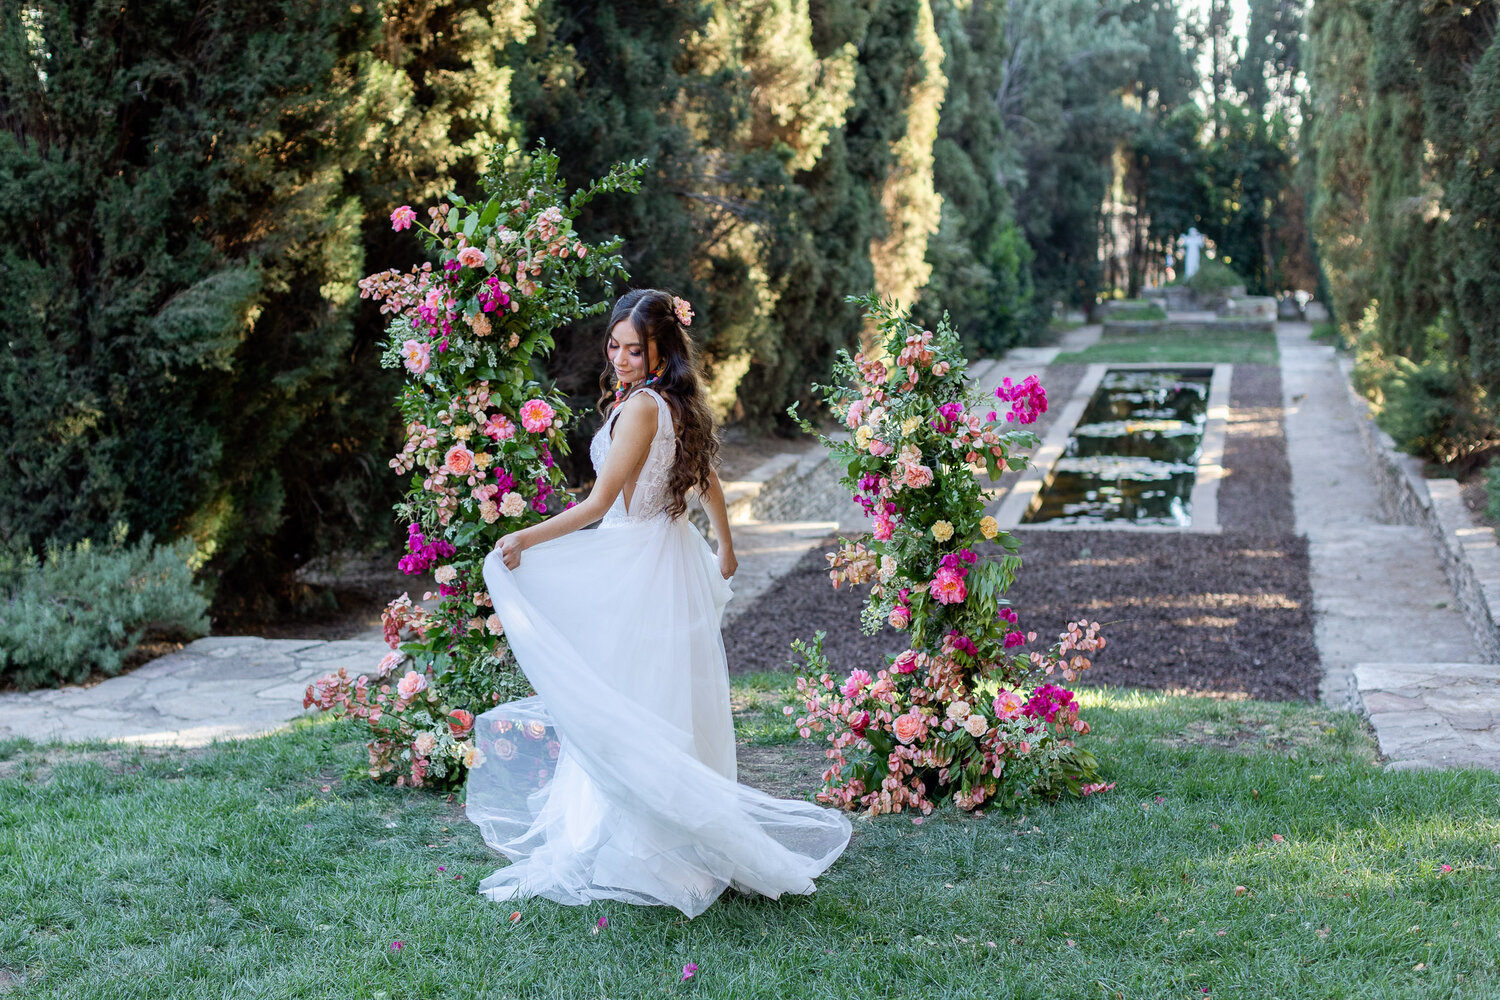 h & l lovely creations bespoke weddings southern california colourful 00030